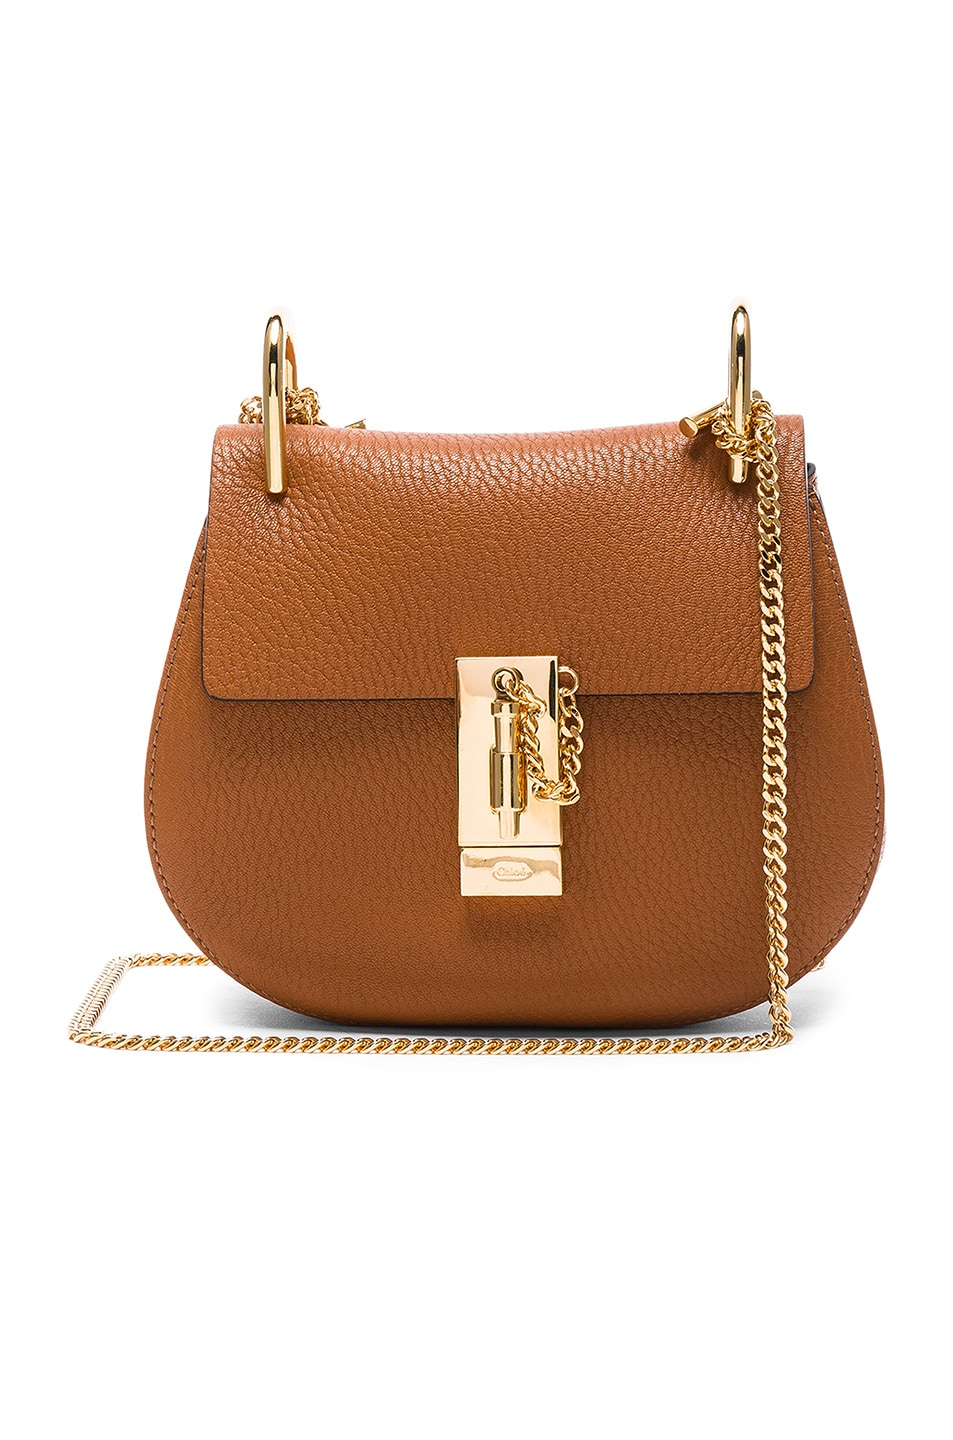 Image 1 of Chloe Mini Grained Leather Drew Bag in Caramel